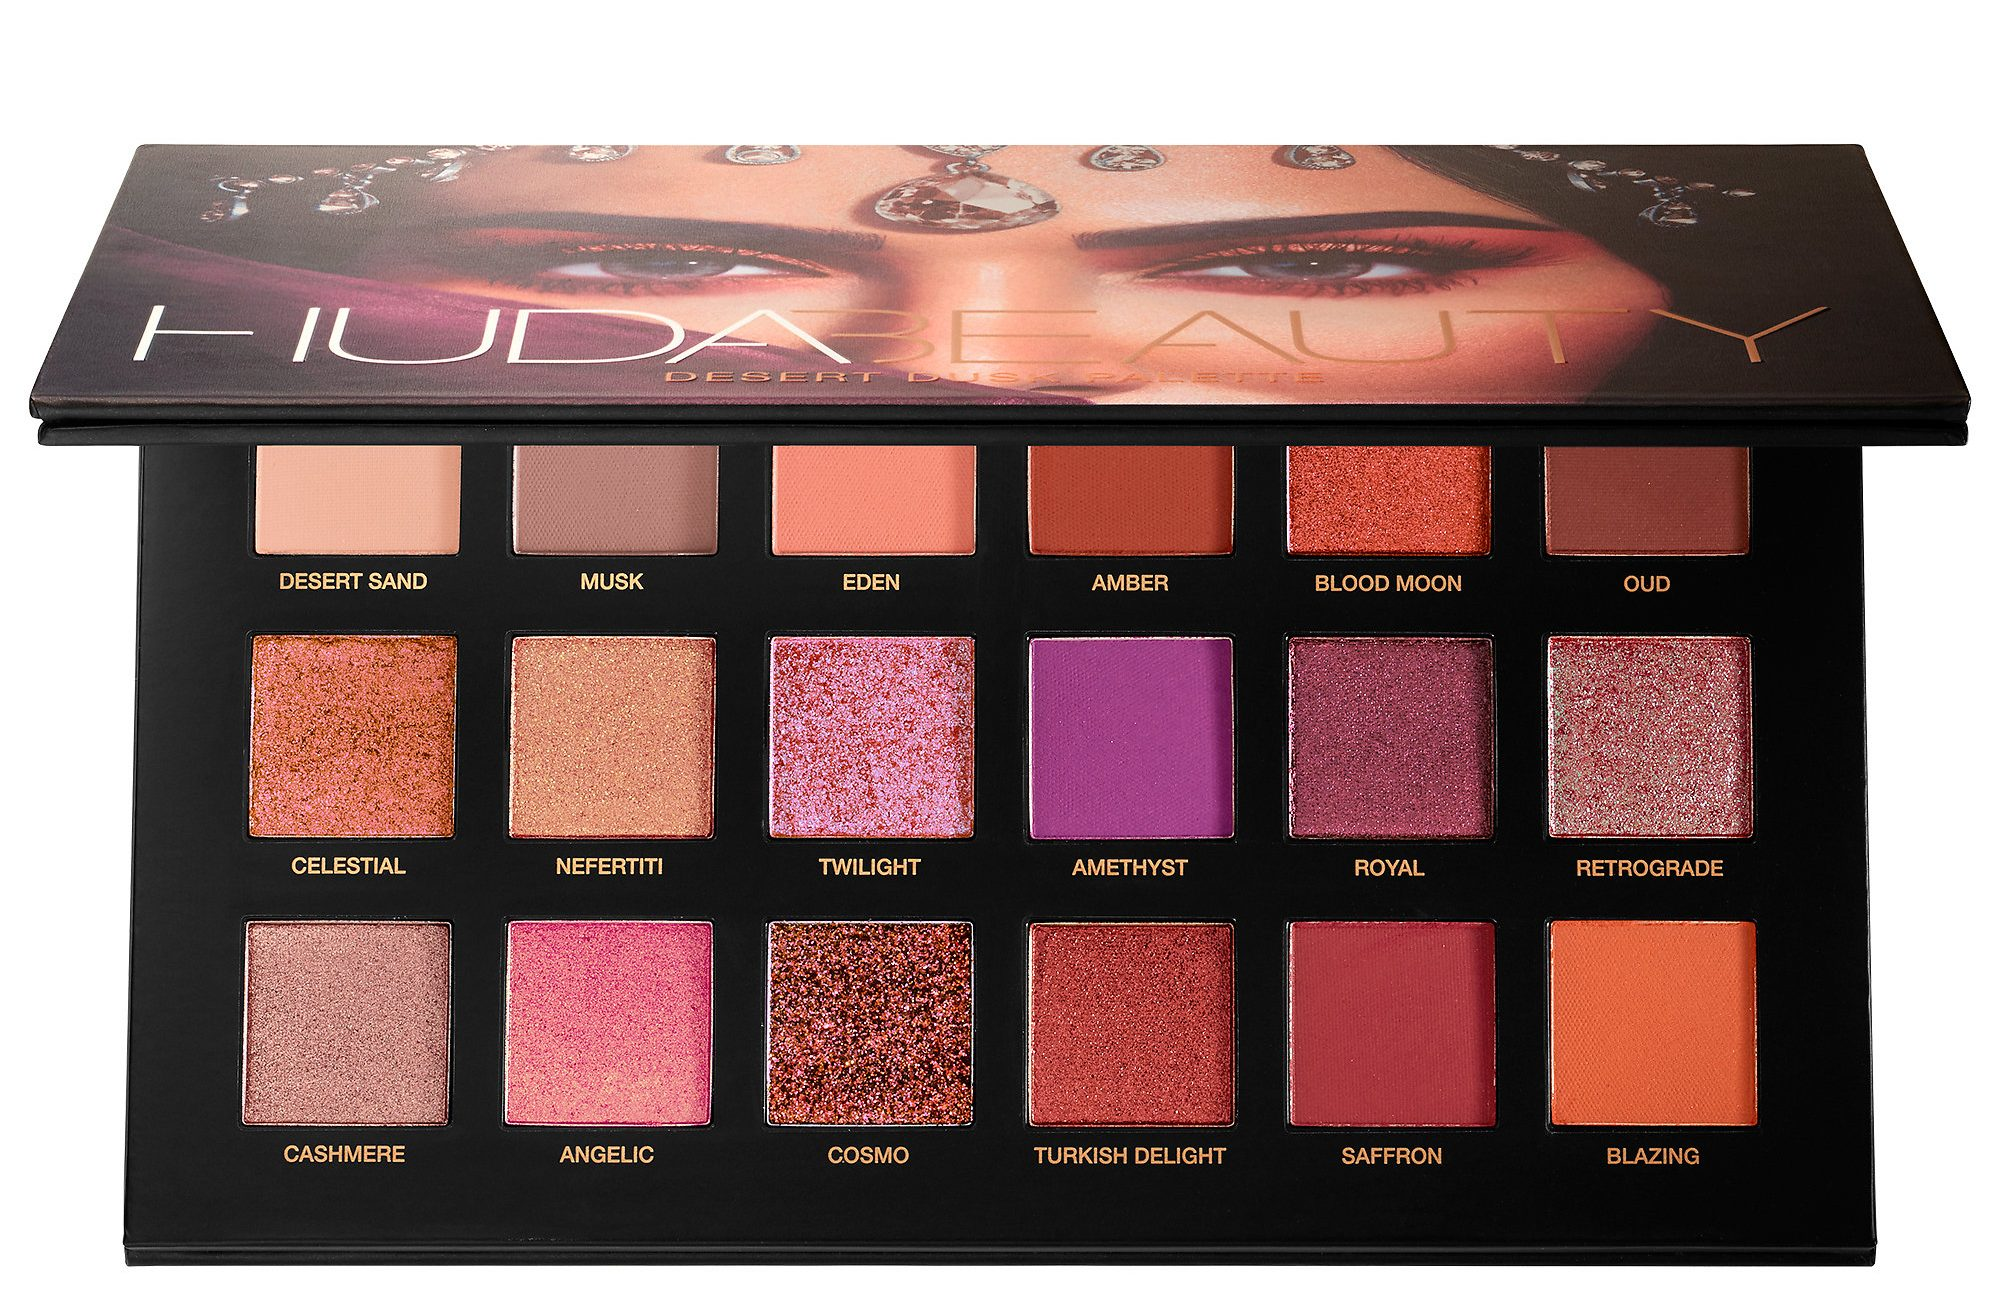 Huda Beauty's Desert Dusk Palette  By Megan Kelly